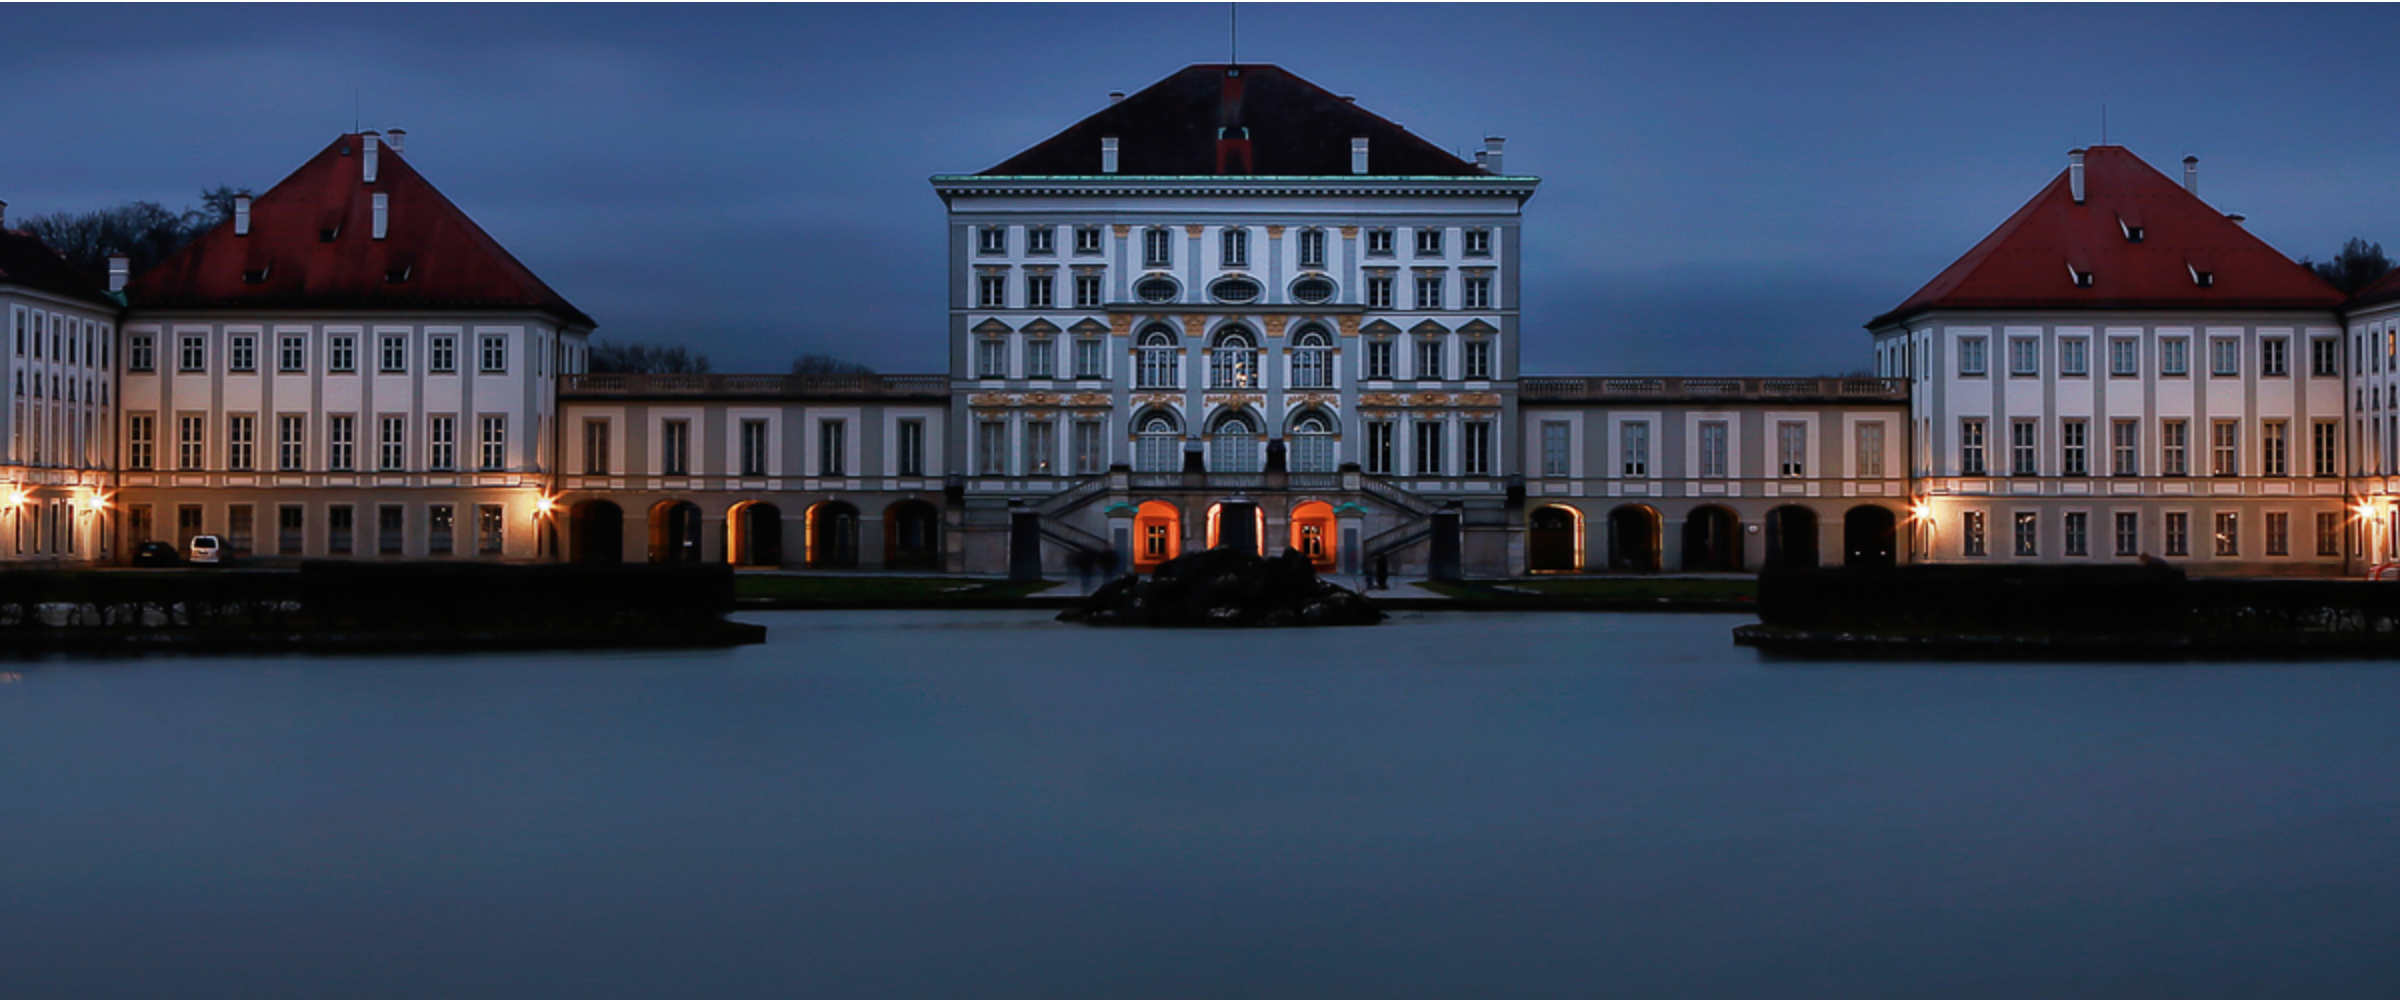 The Nymphenburg Palace in Munich. Image credit: Biotopia Museum Mensch und Natur.